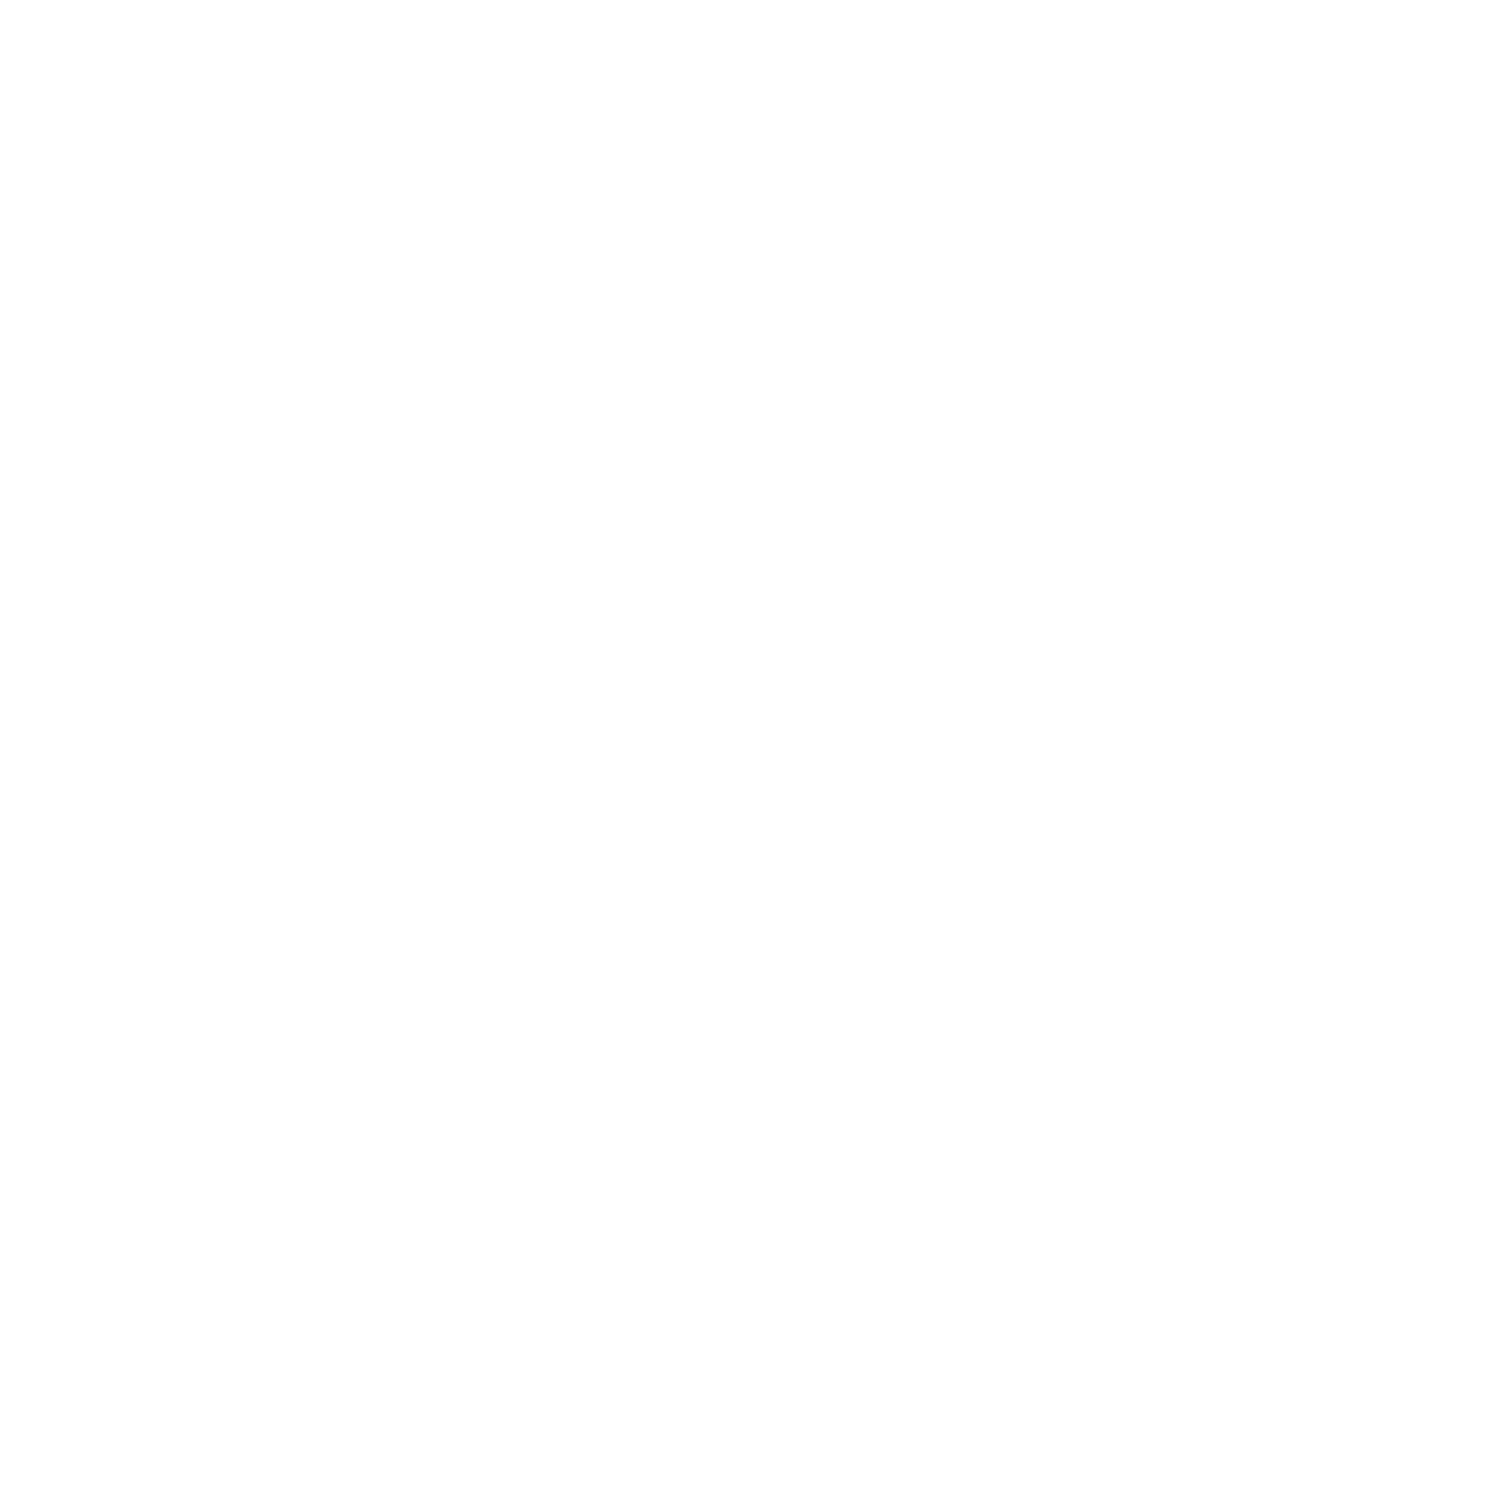 STARWOOD RANCH